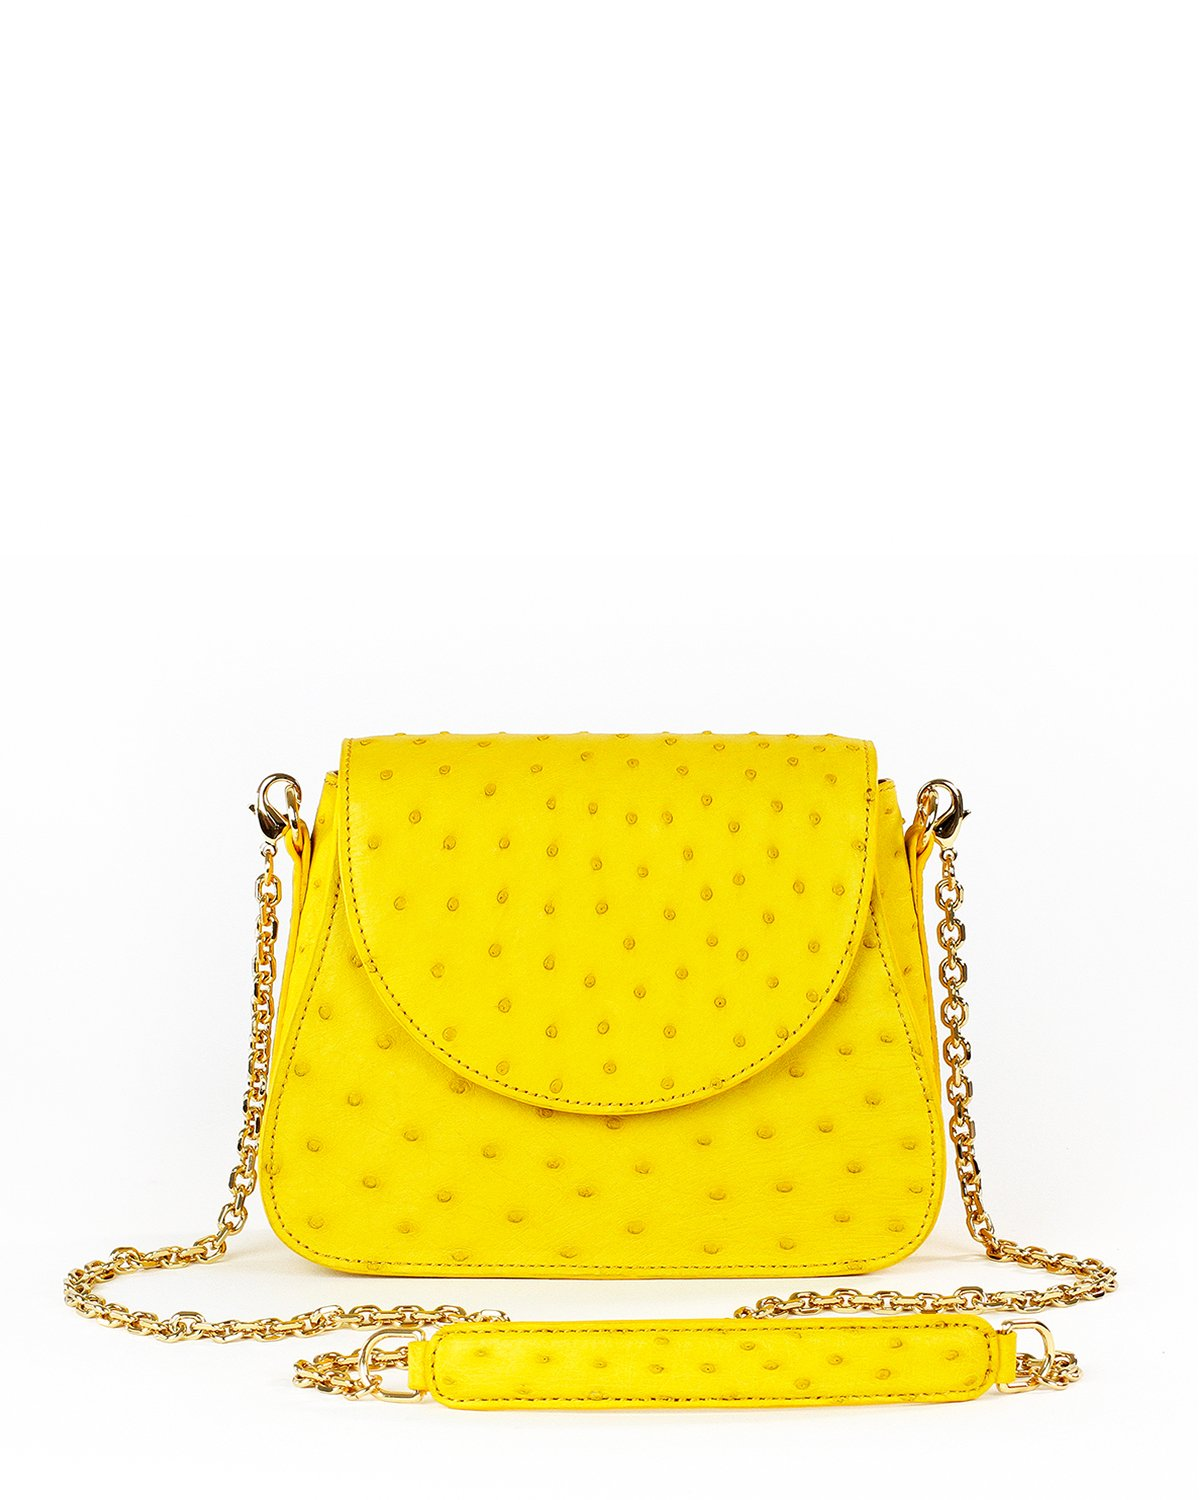 Ostrich Yara Bashoor Handbag Yellow Crossbody Front Image with Shoulder Pad and Chain Shoulder Strap